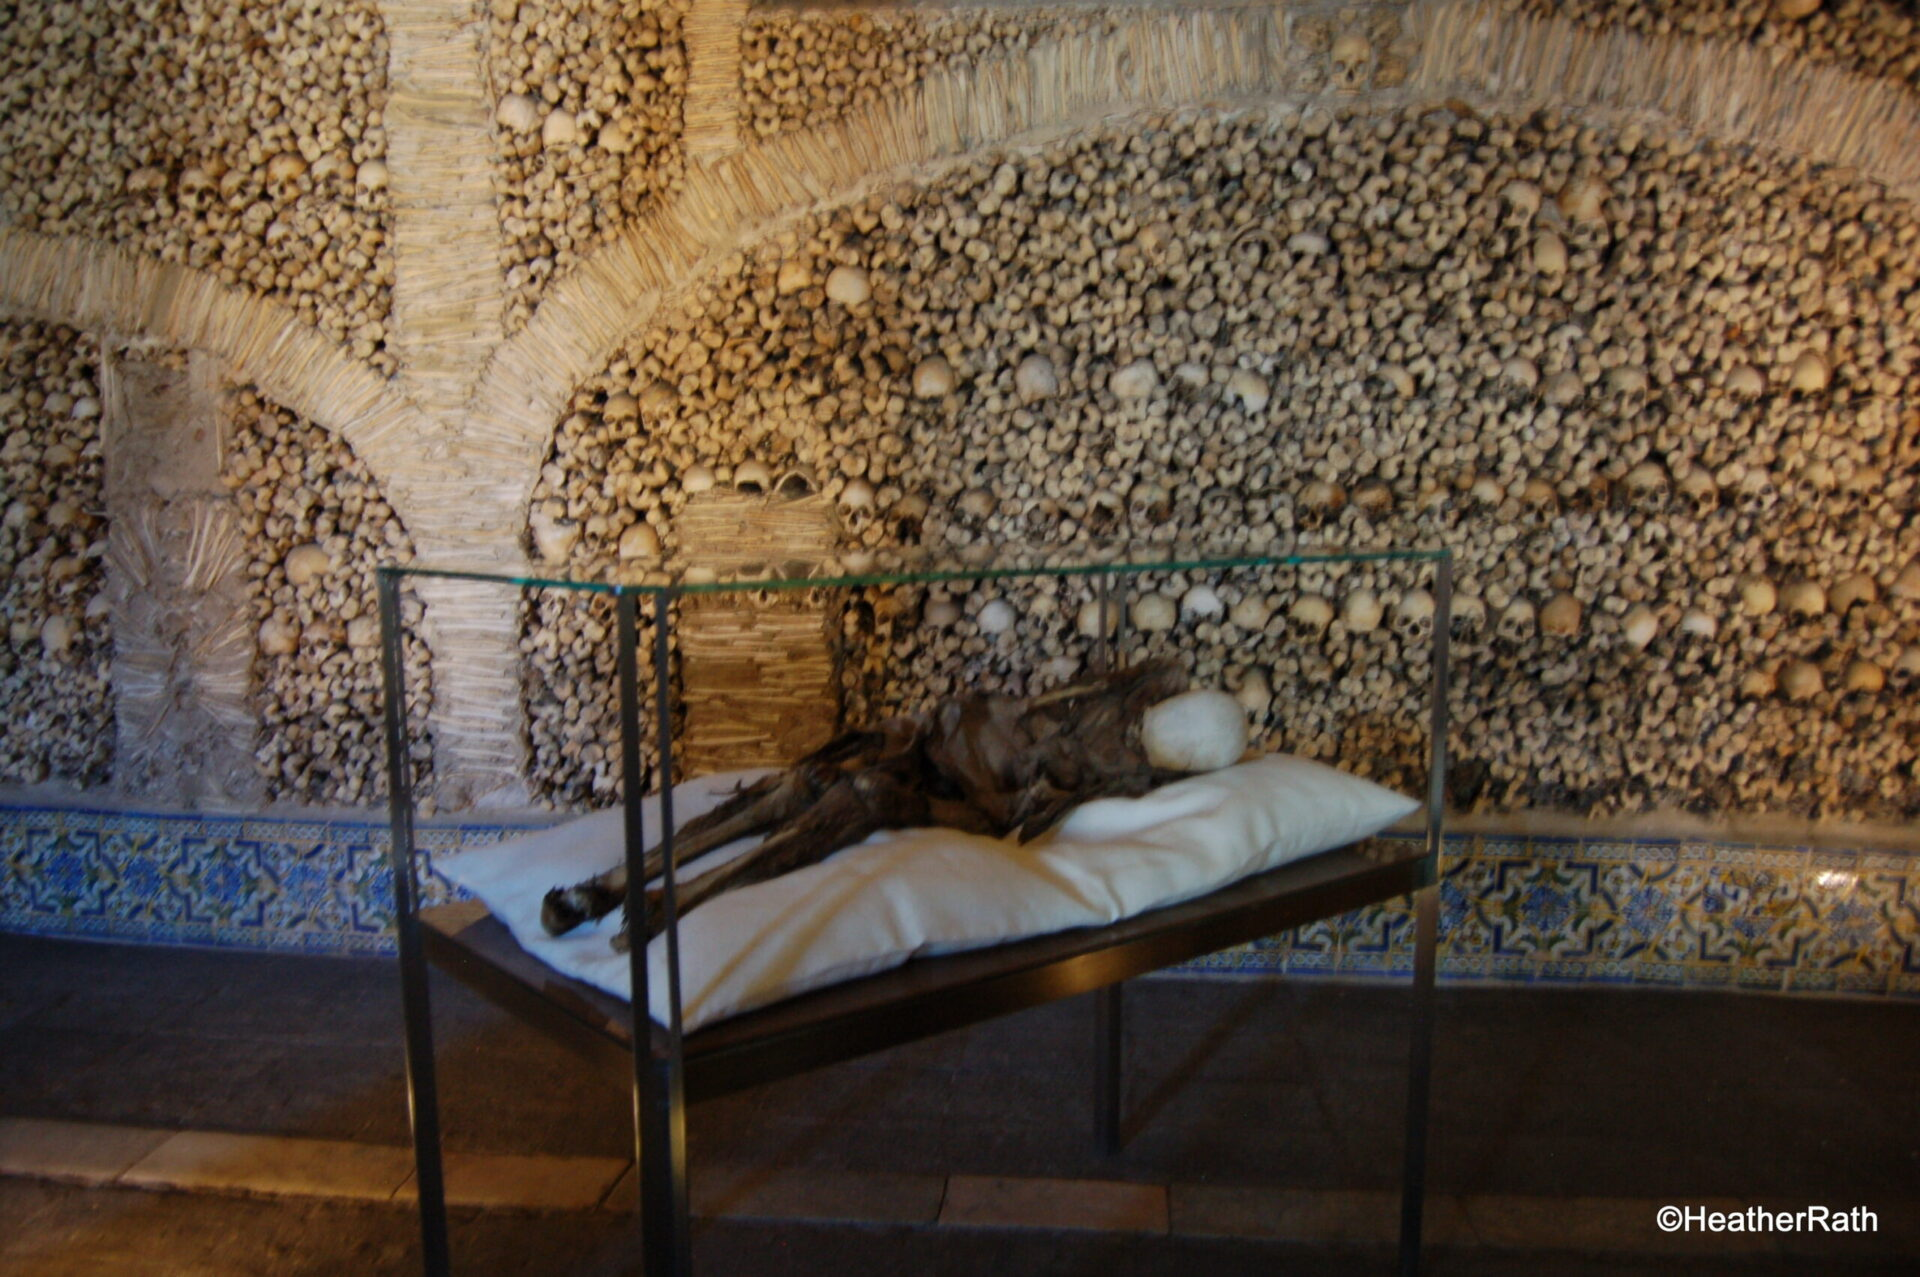 What do the Chapel of Bones, Cork Trees, and Megaliths Have in Common?